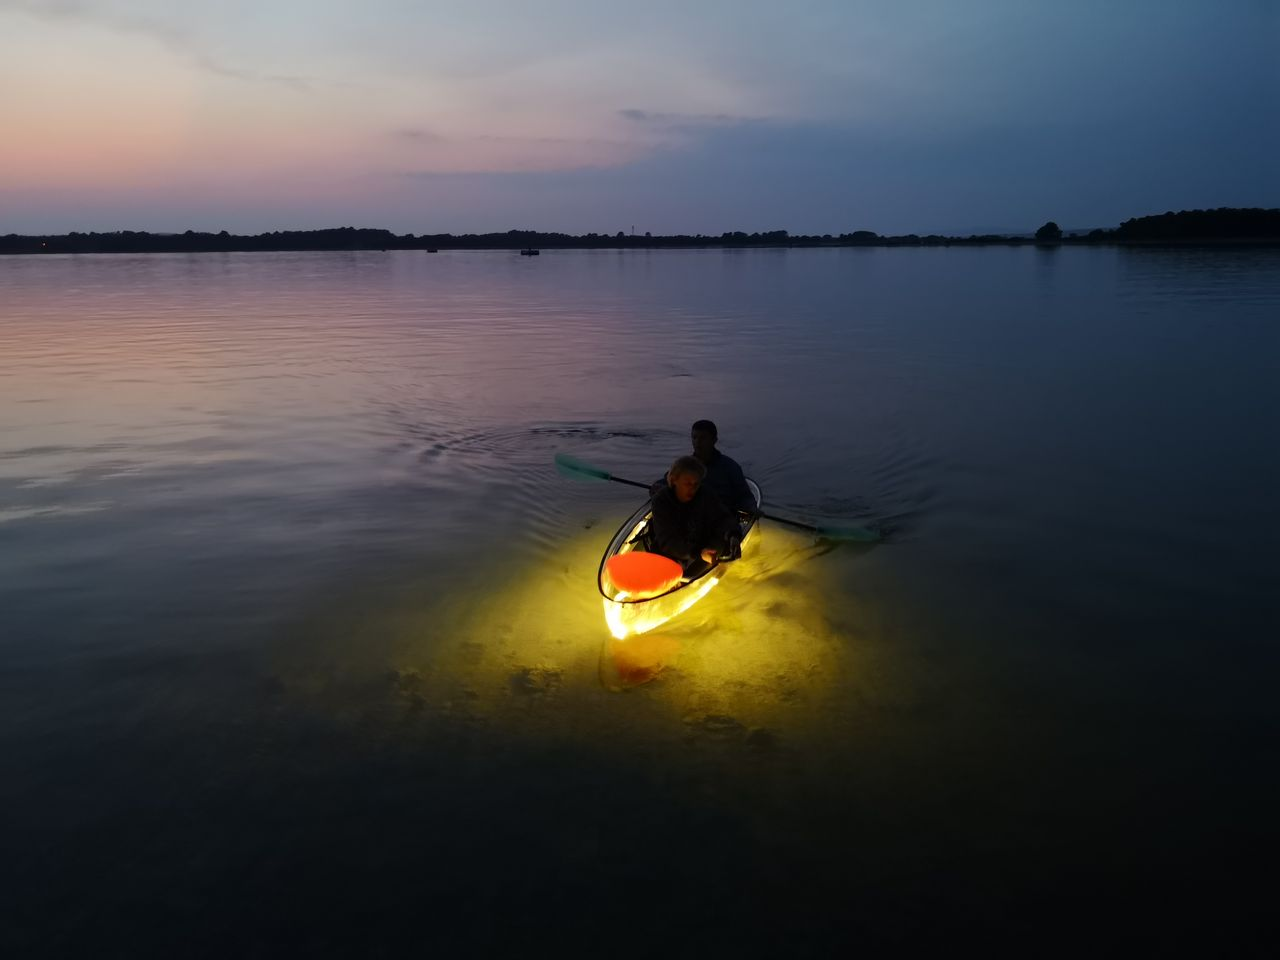 a man paddling in a kayak with lights by night